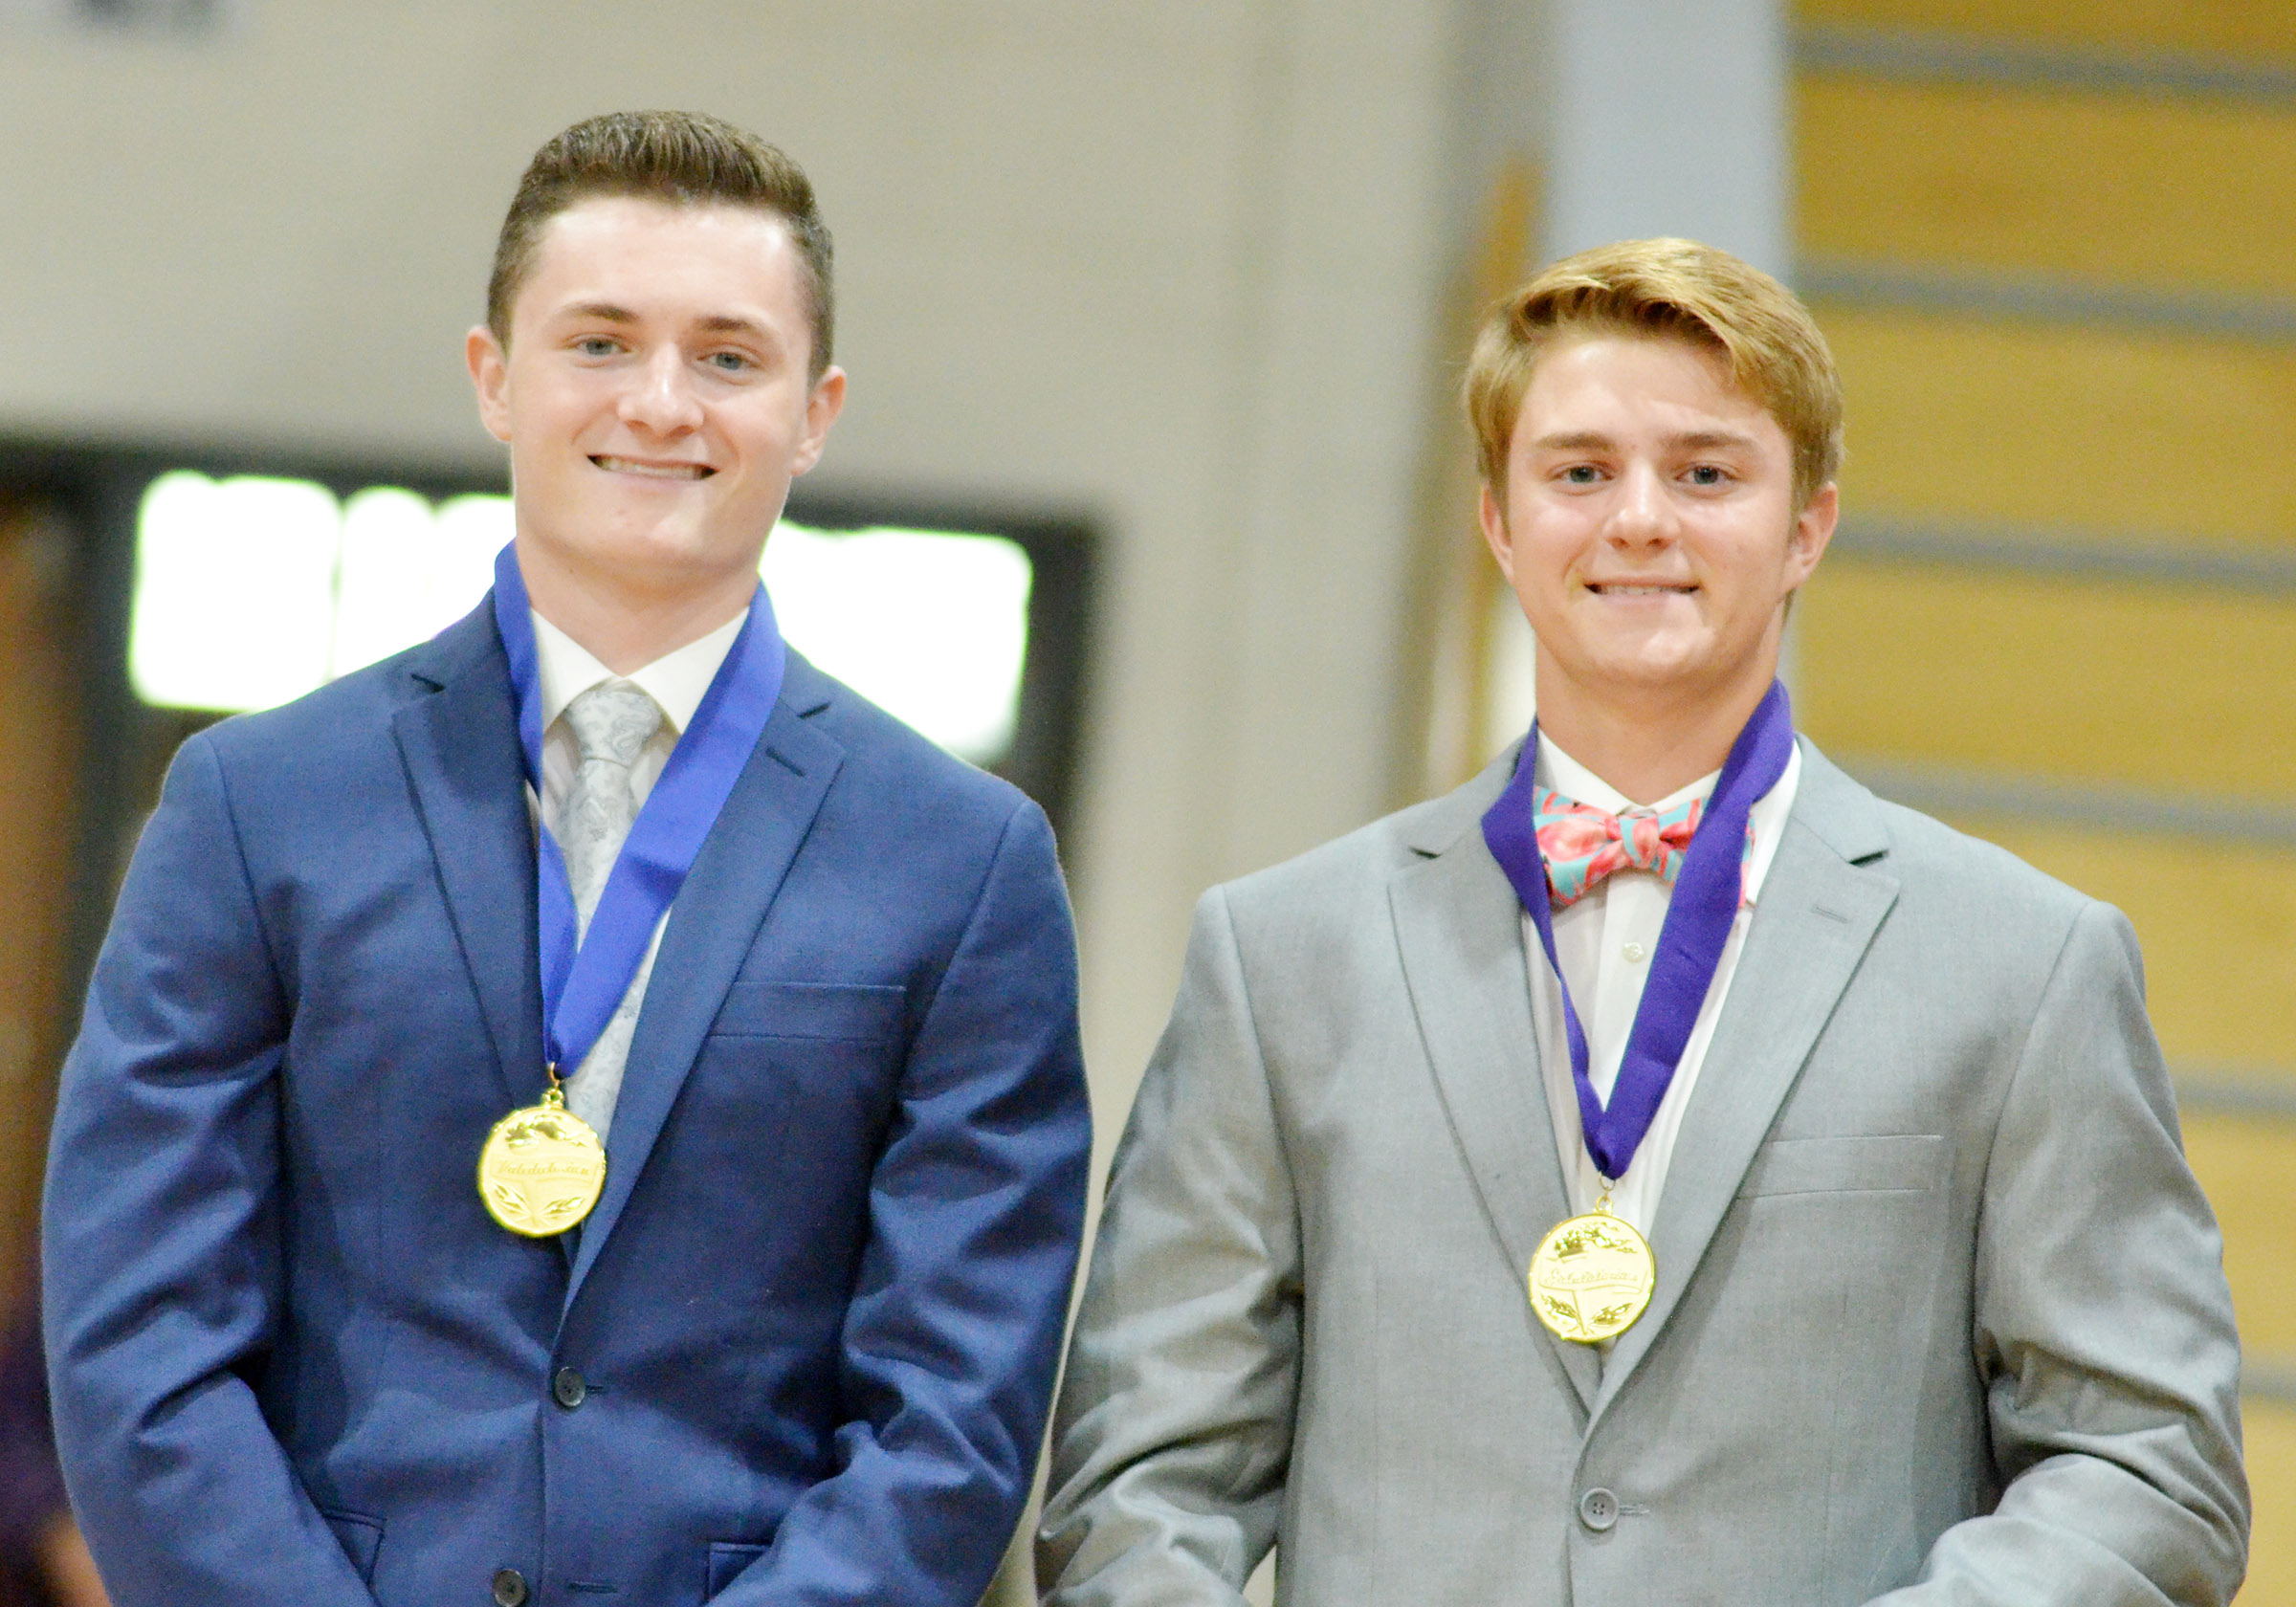 CHS Class of 2018 valedictorian and salutatorian are Bryce Richardson, at left, and Alex Doss, respectively.